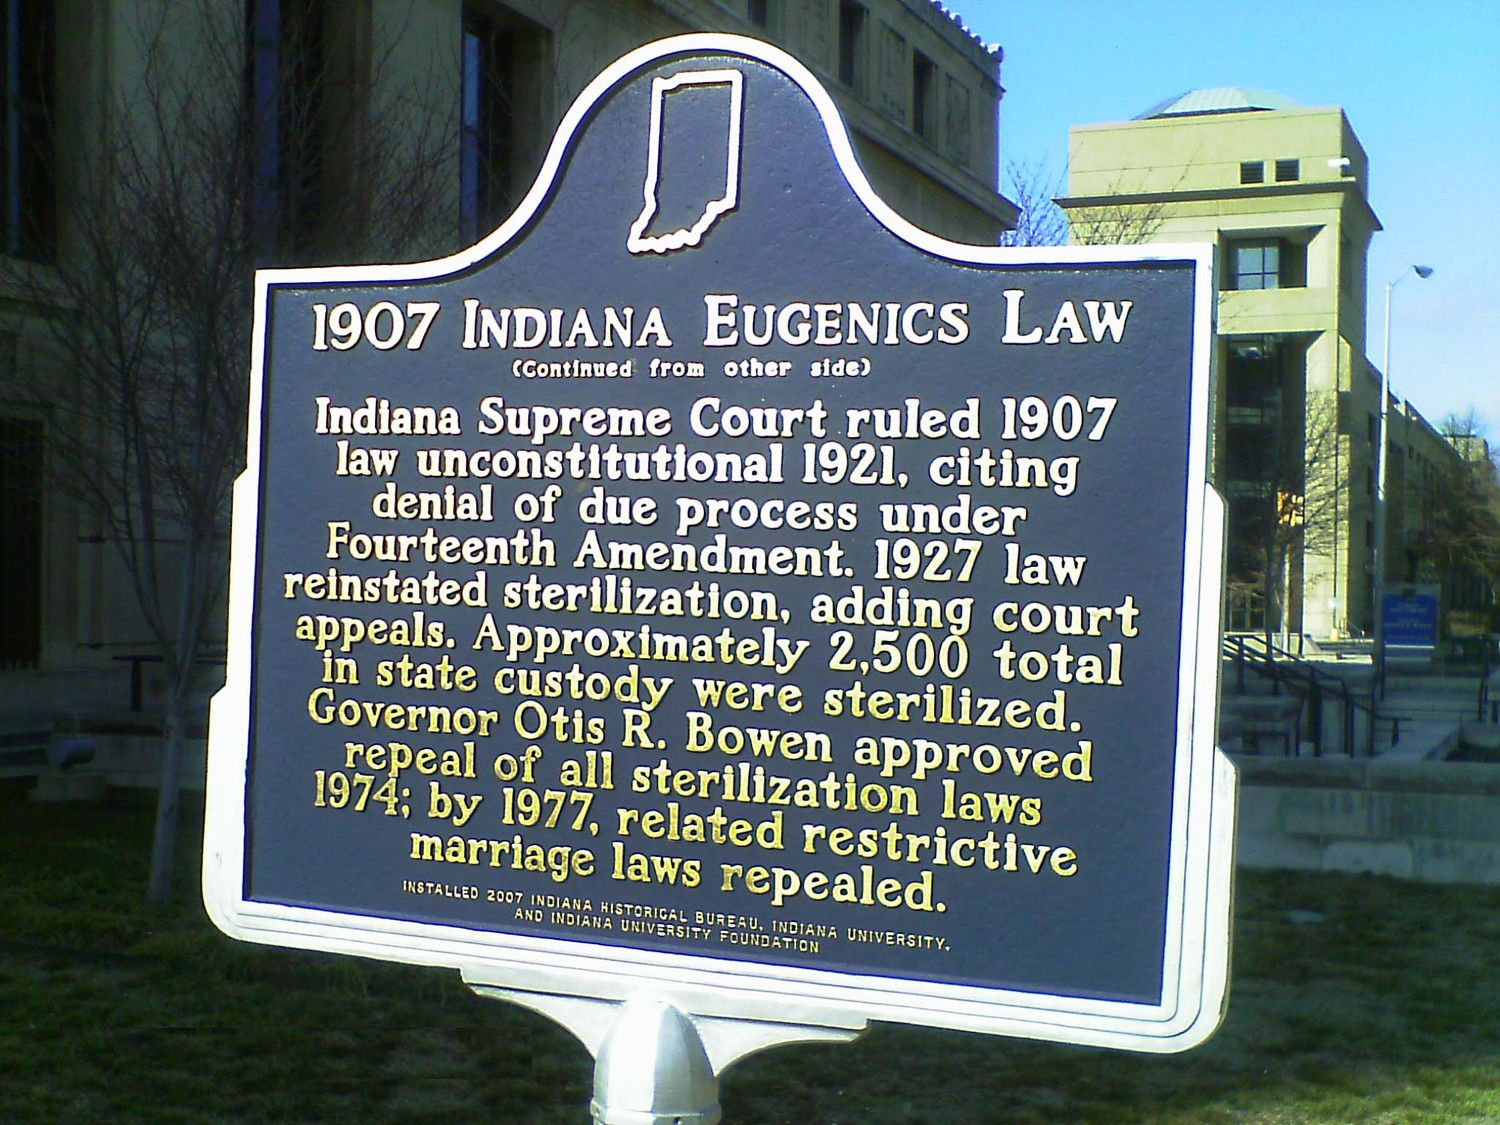 Indiana Eugenics Law Marker